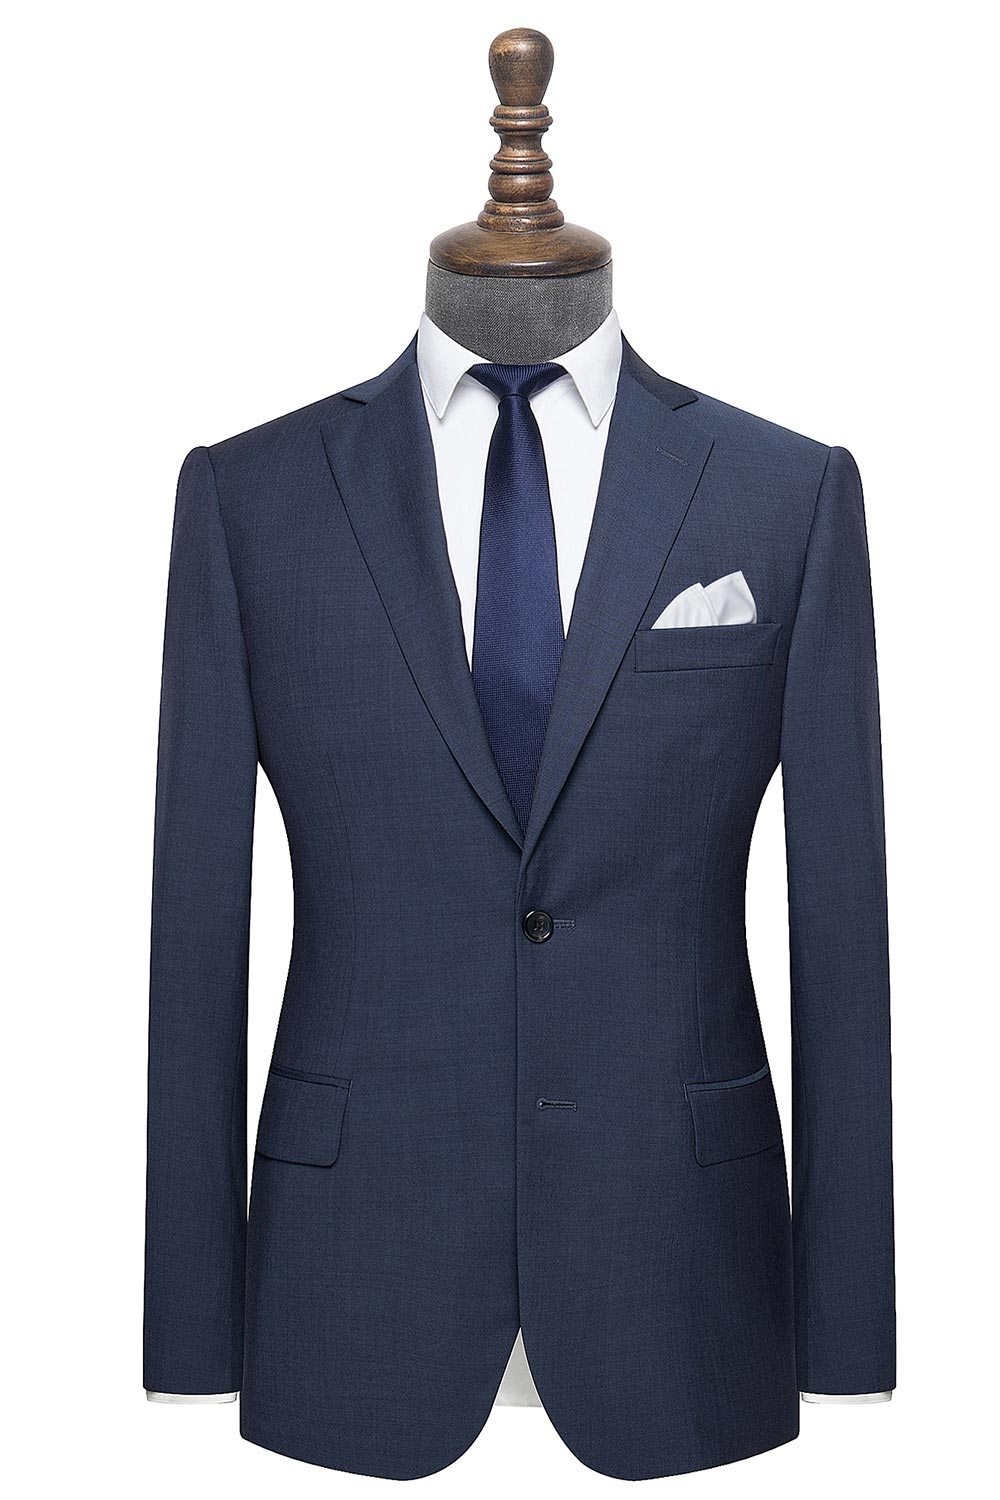 InStitchu Collection The Avalon Navy Plain mens suit